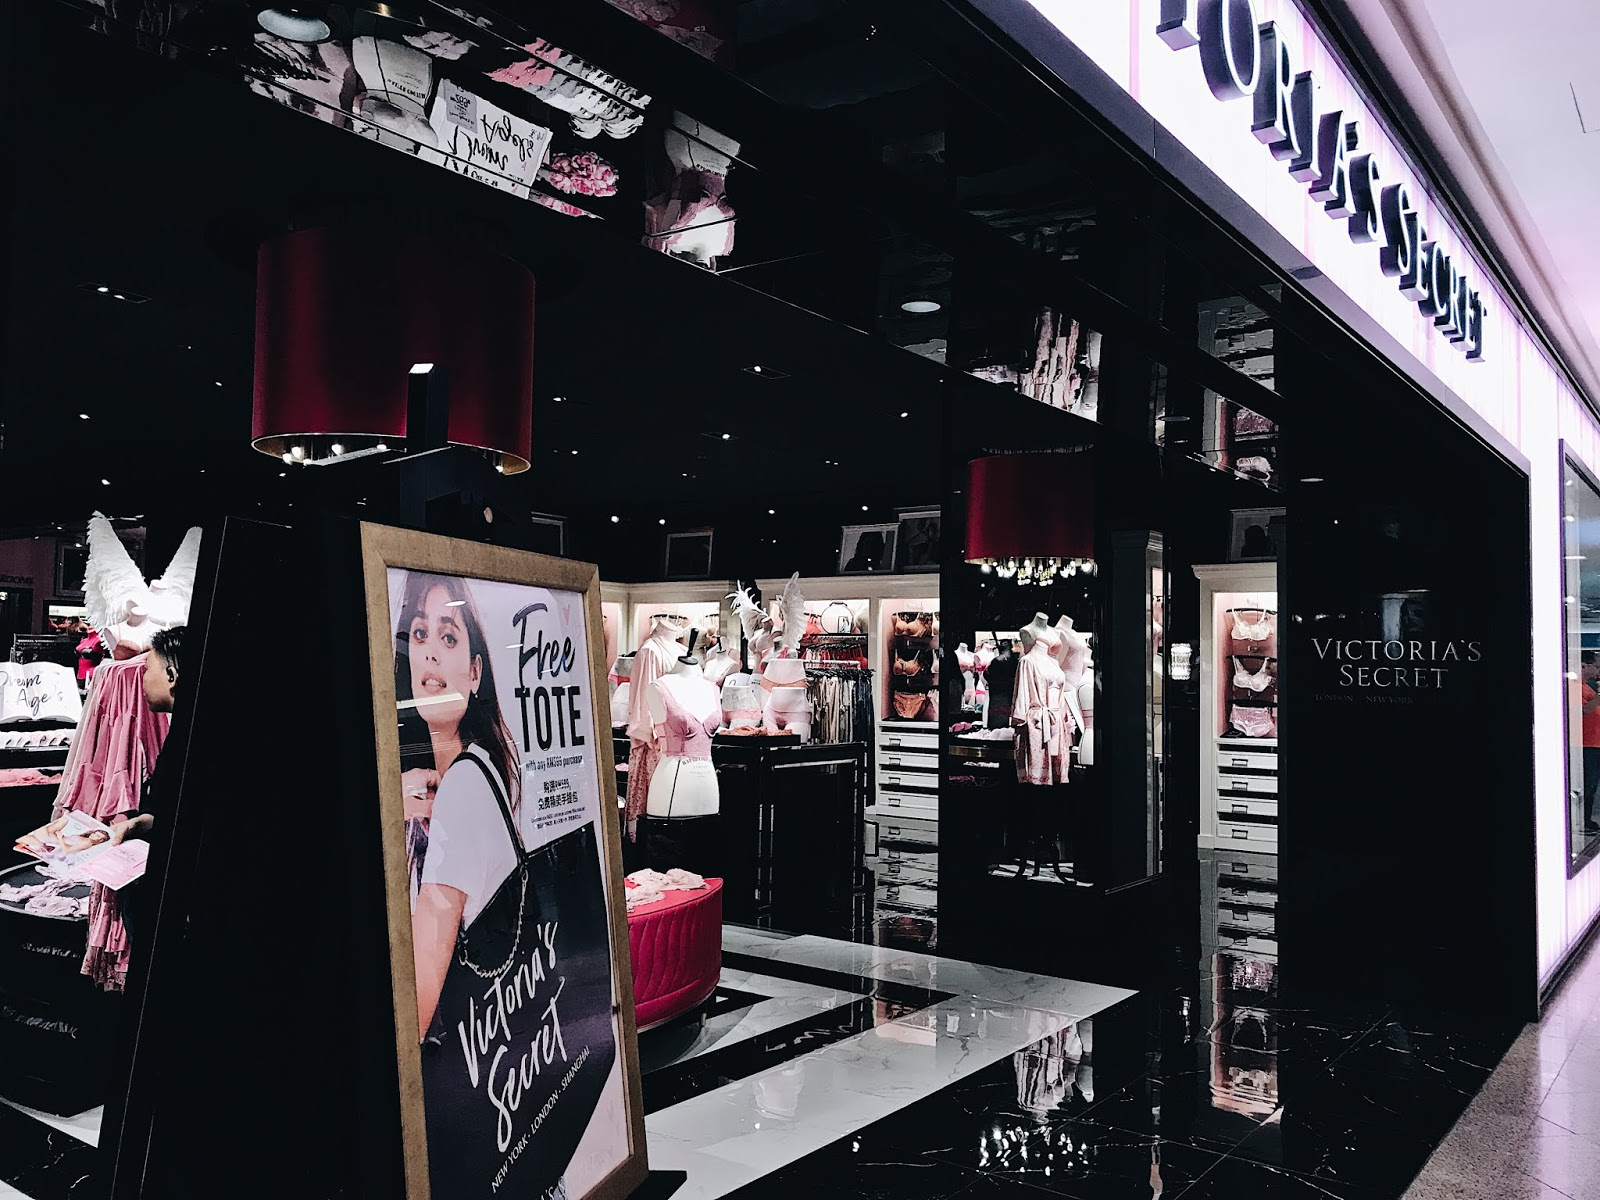 7213baf1949 Victoria s Secret is the leading specialty retailer of lingerie and beauty  products with prestige fragrances